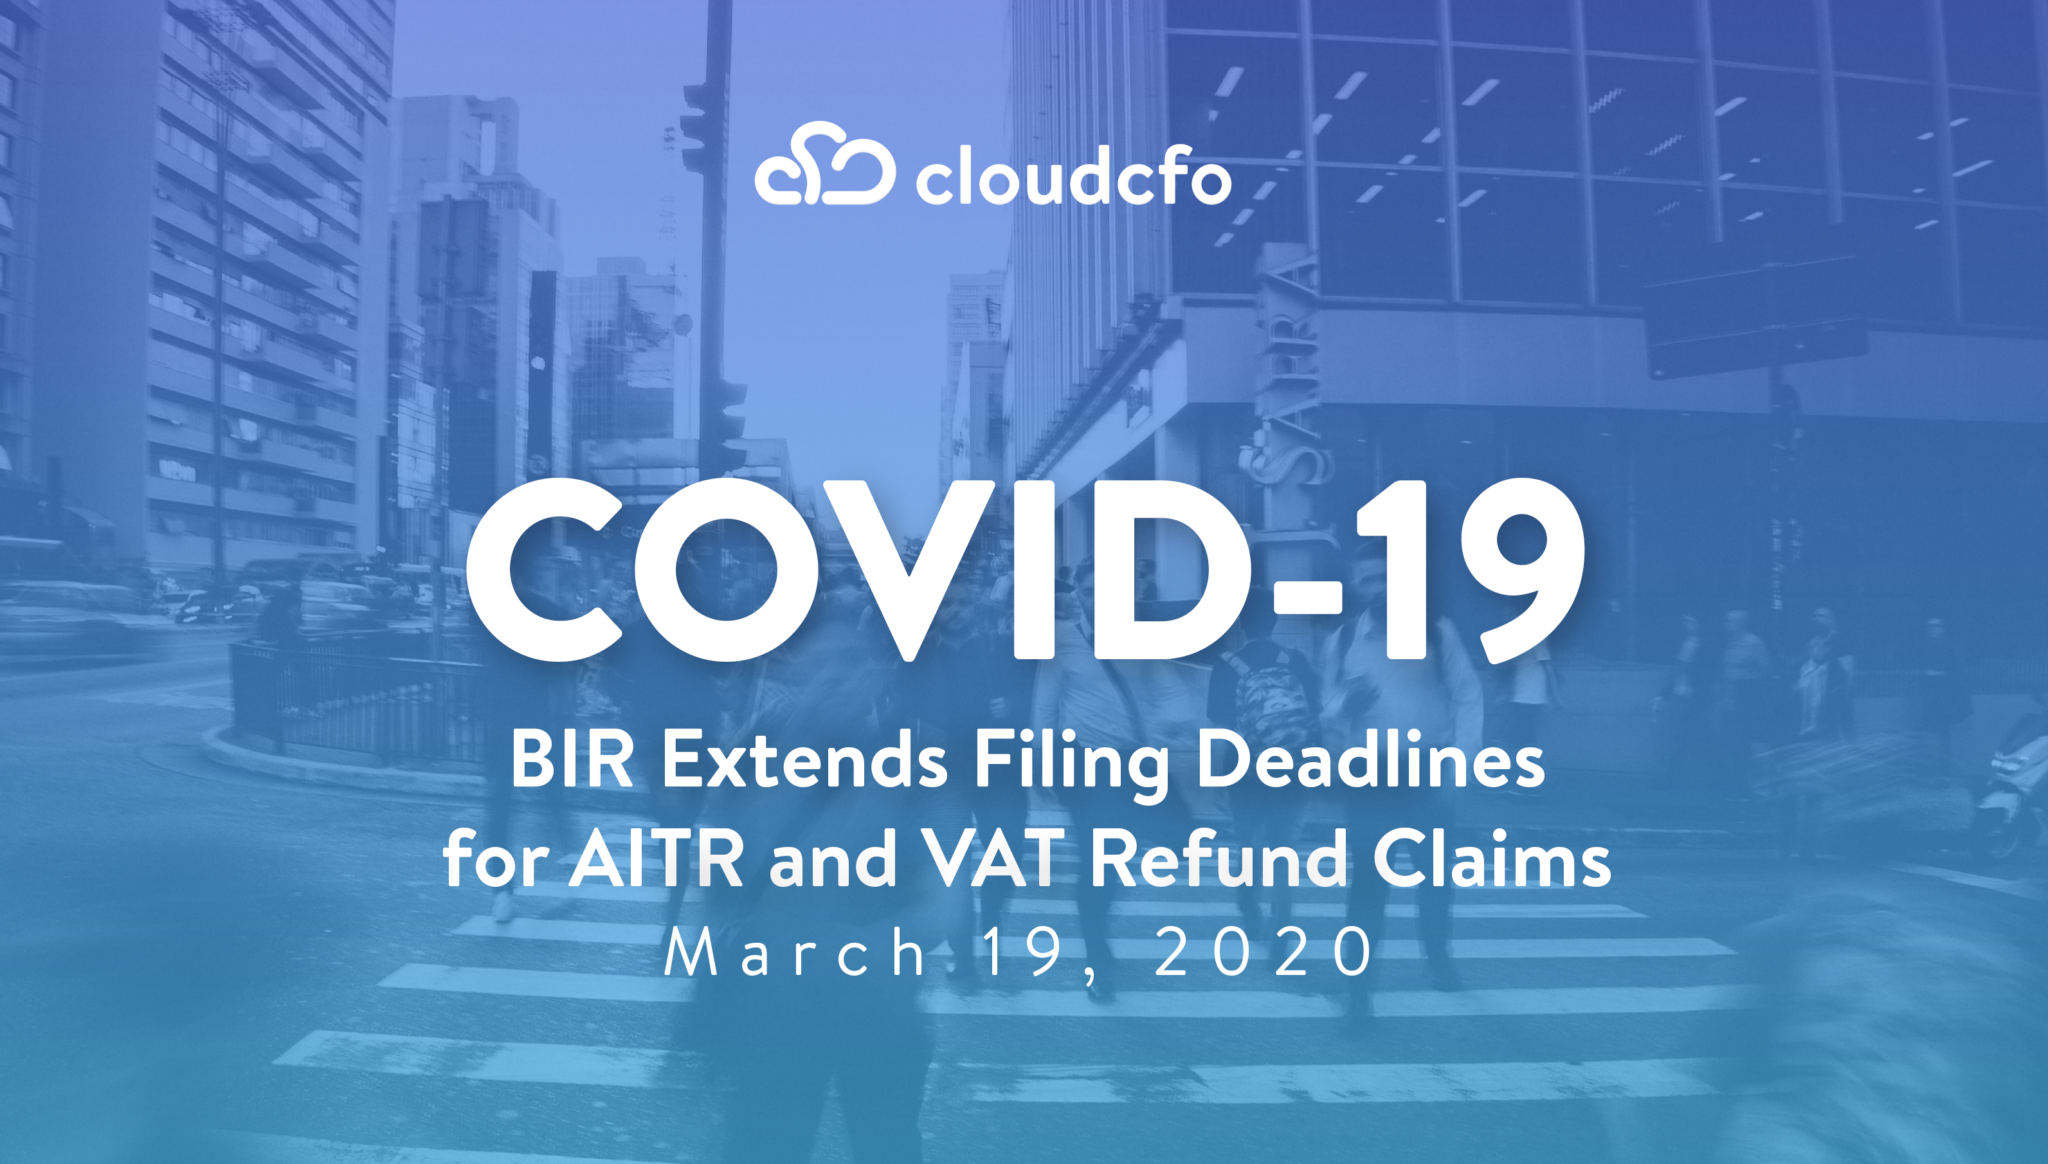 COVID-19 – BIR Extends Filing Deadlines for AITR and VAT Refund Claims – 19 March 2020